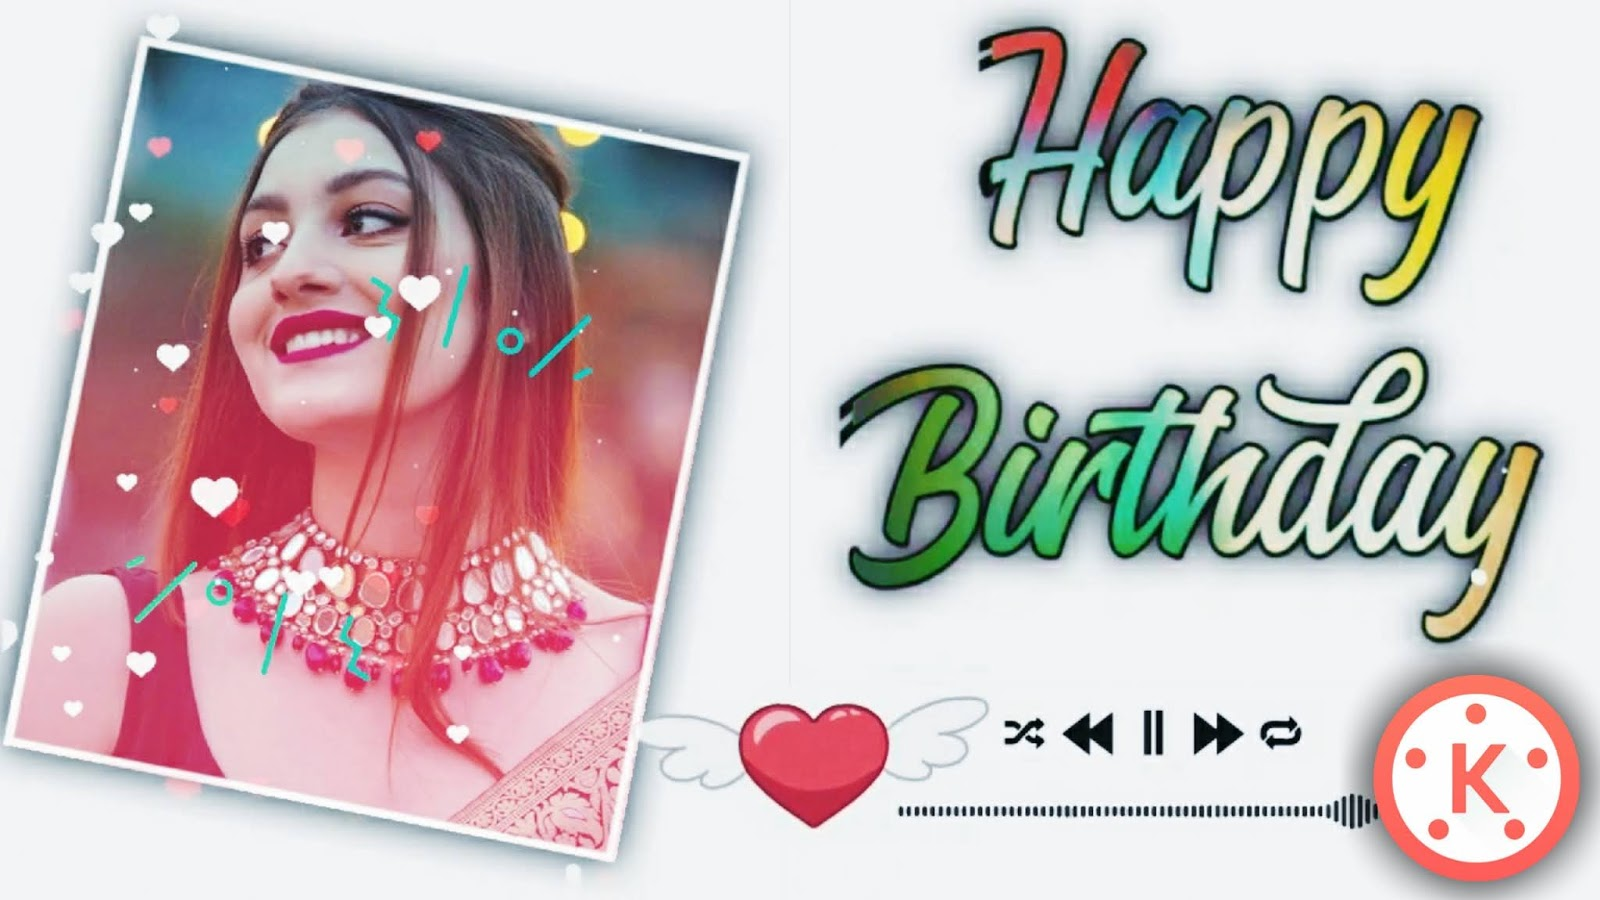 The Best Avee Player Happy Birthday Template Download Free For Kinemaster Images